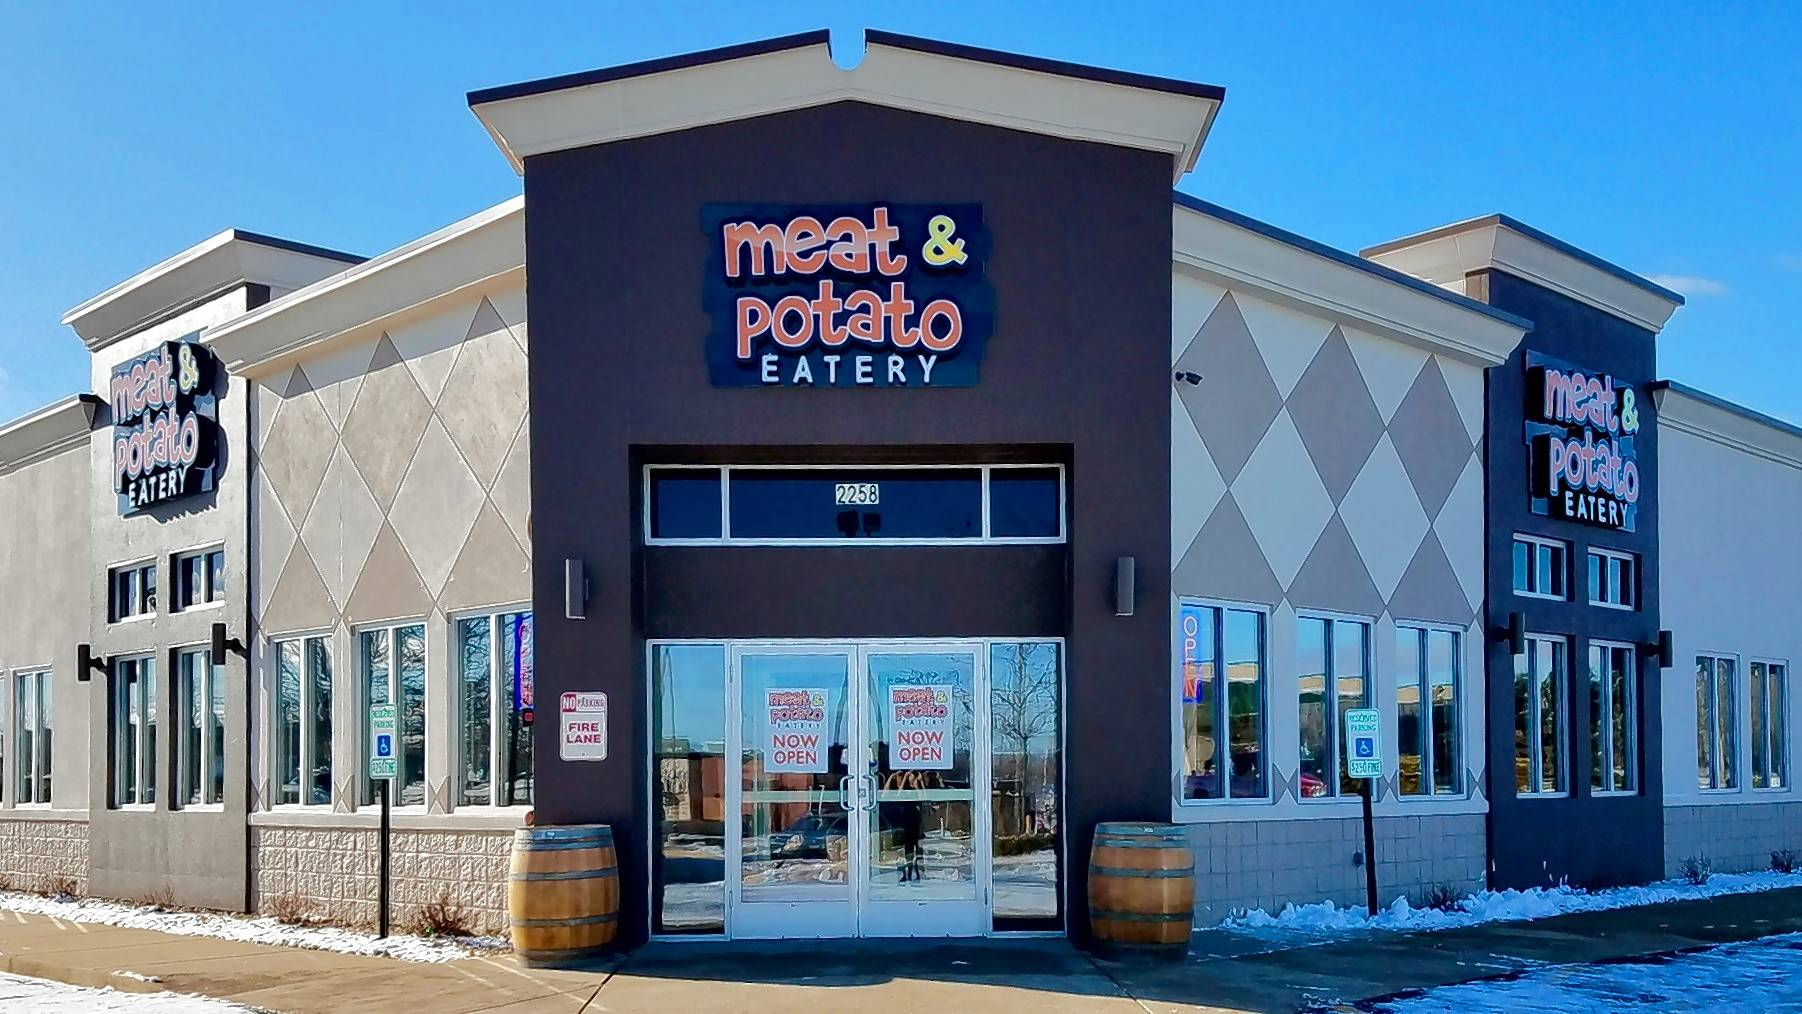 Meat & Potato Eatery is building its next location in Lake Zurich. This one opened recently in Carpentersville.